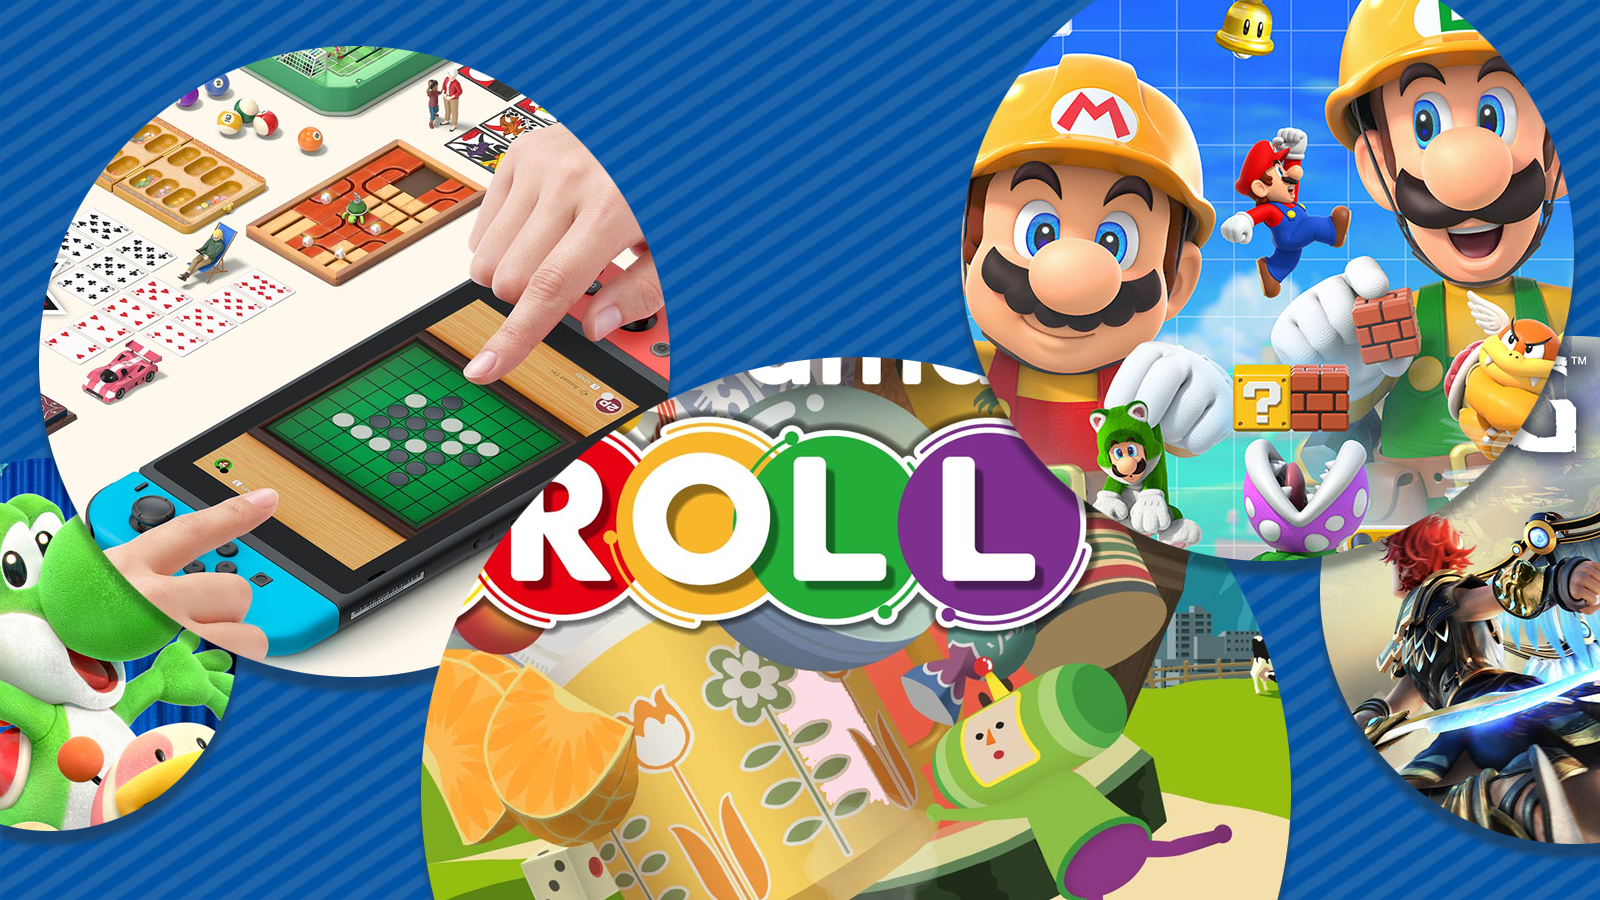 Save Up to 60% on Switch Games During Nintendo's Belated